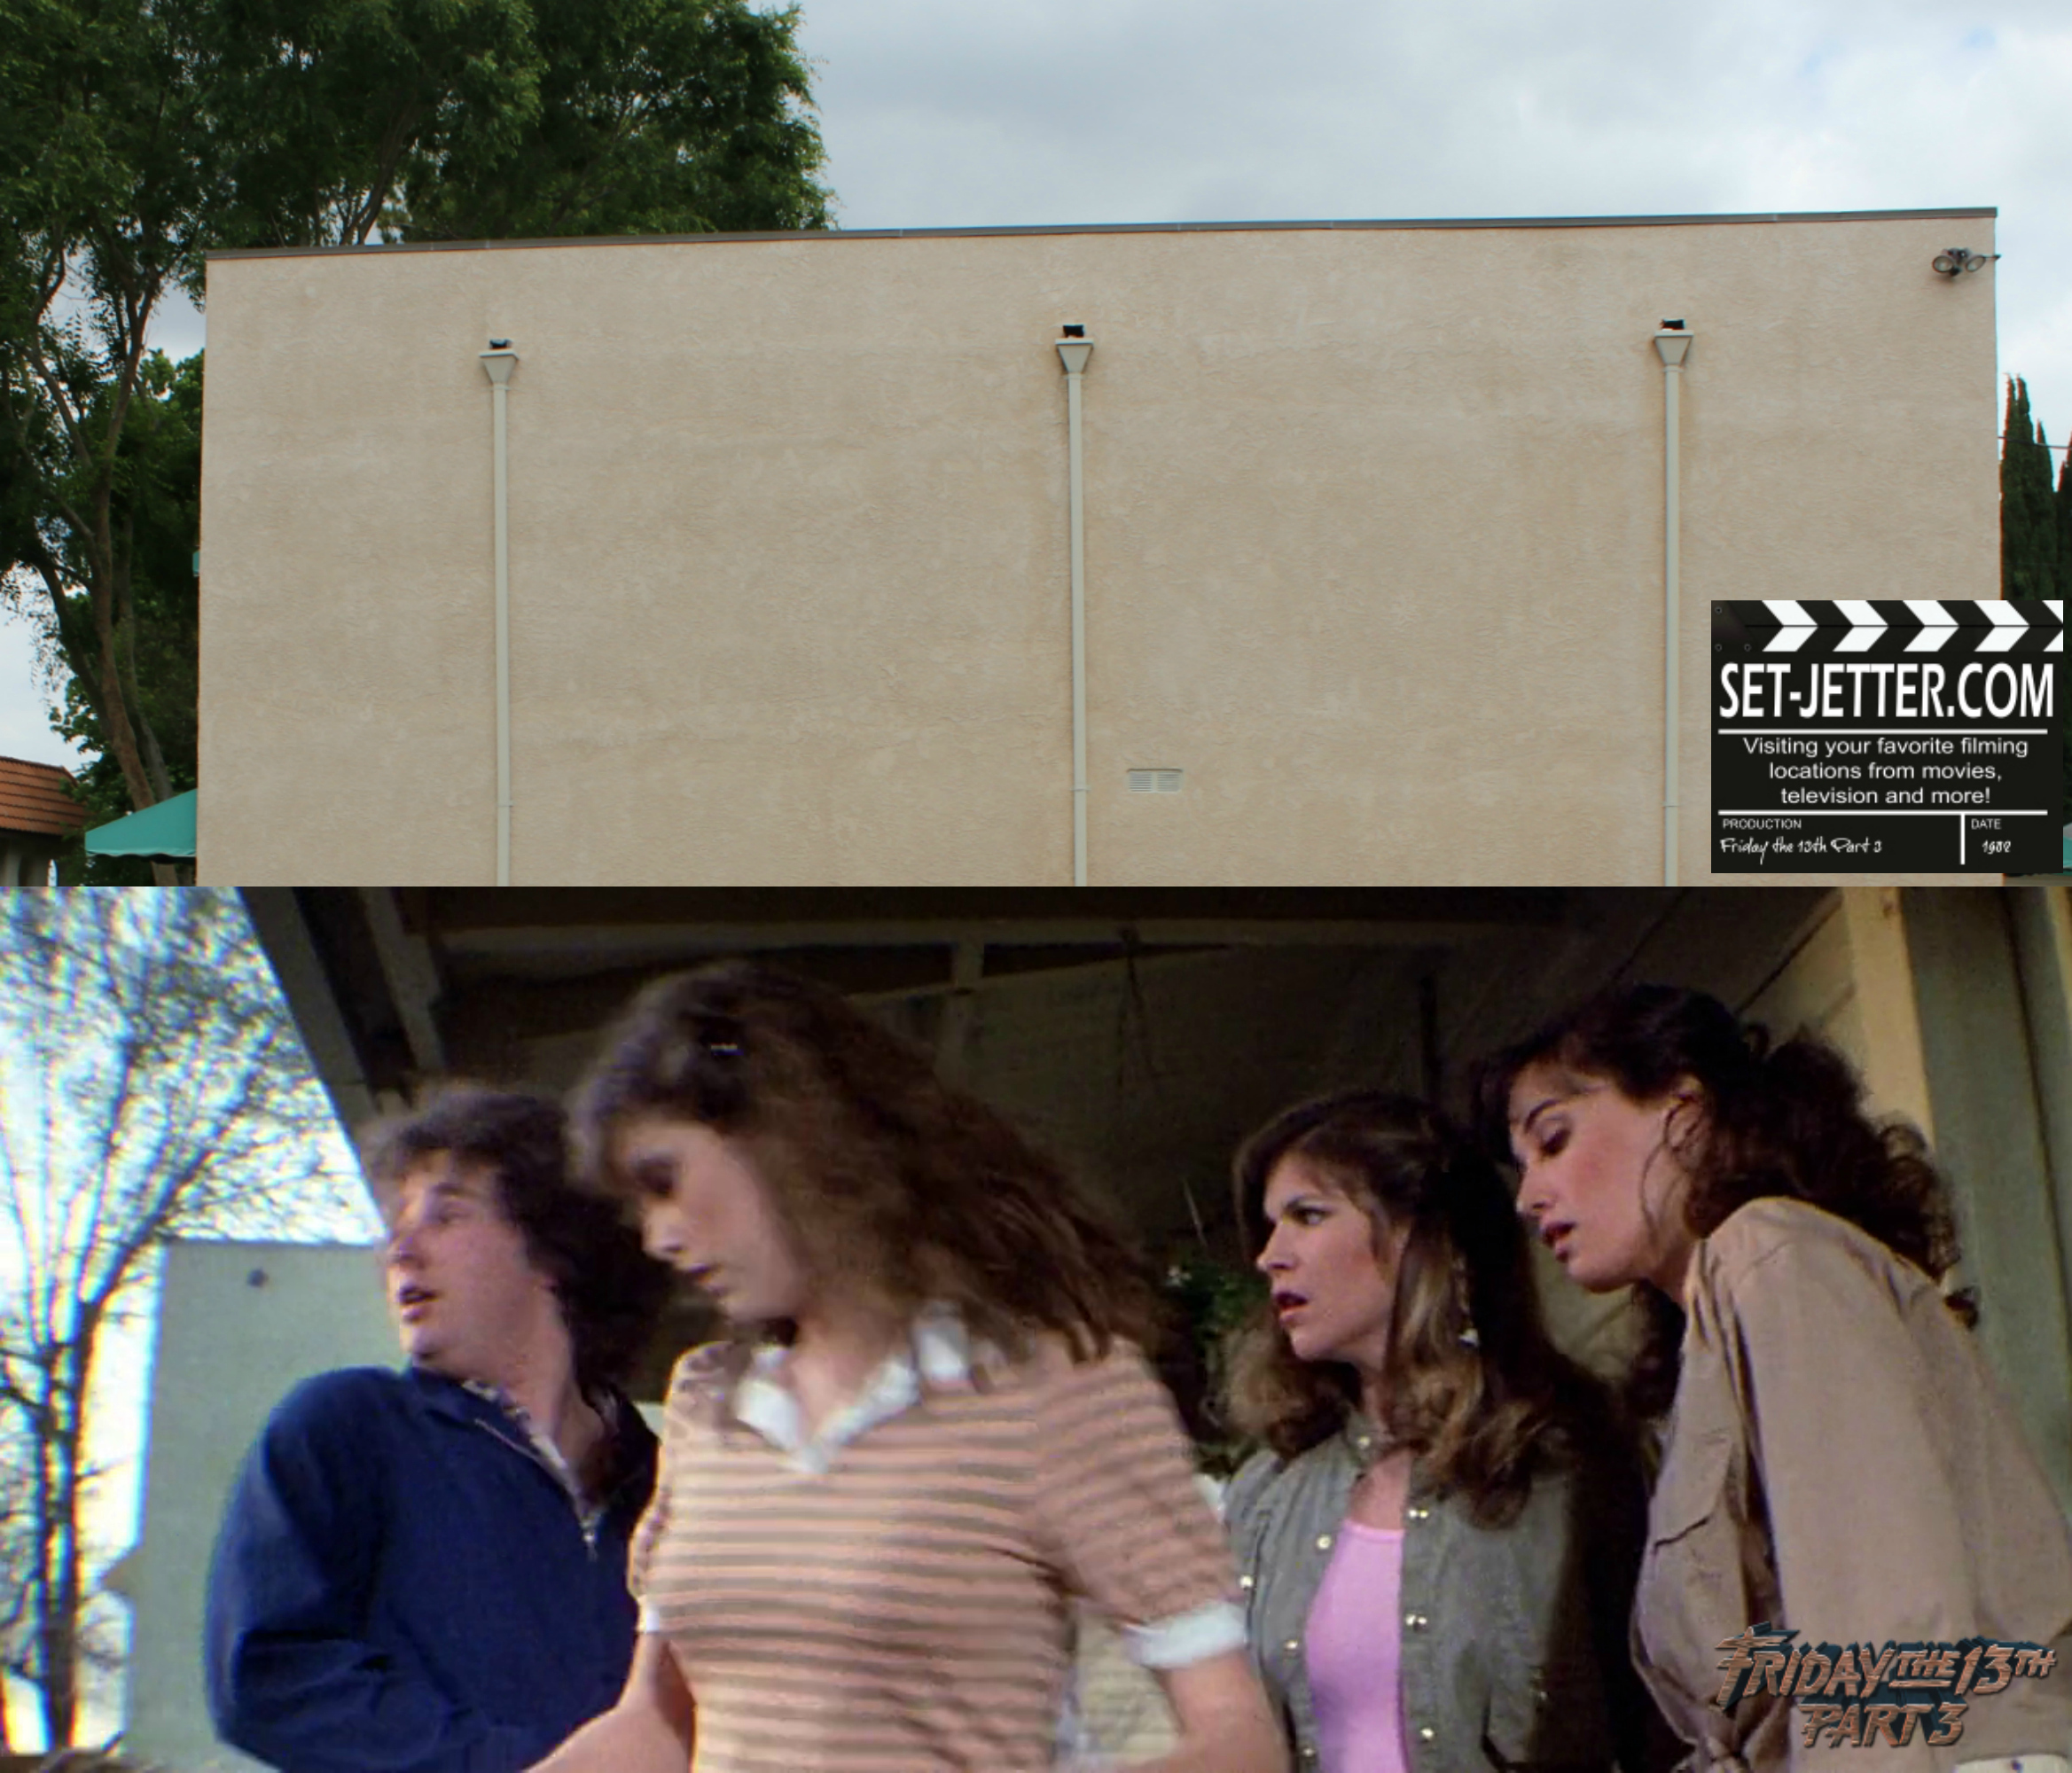 Friday the 13th Part 3 comparison 33.jpg